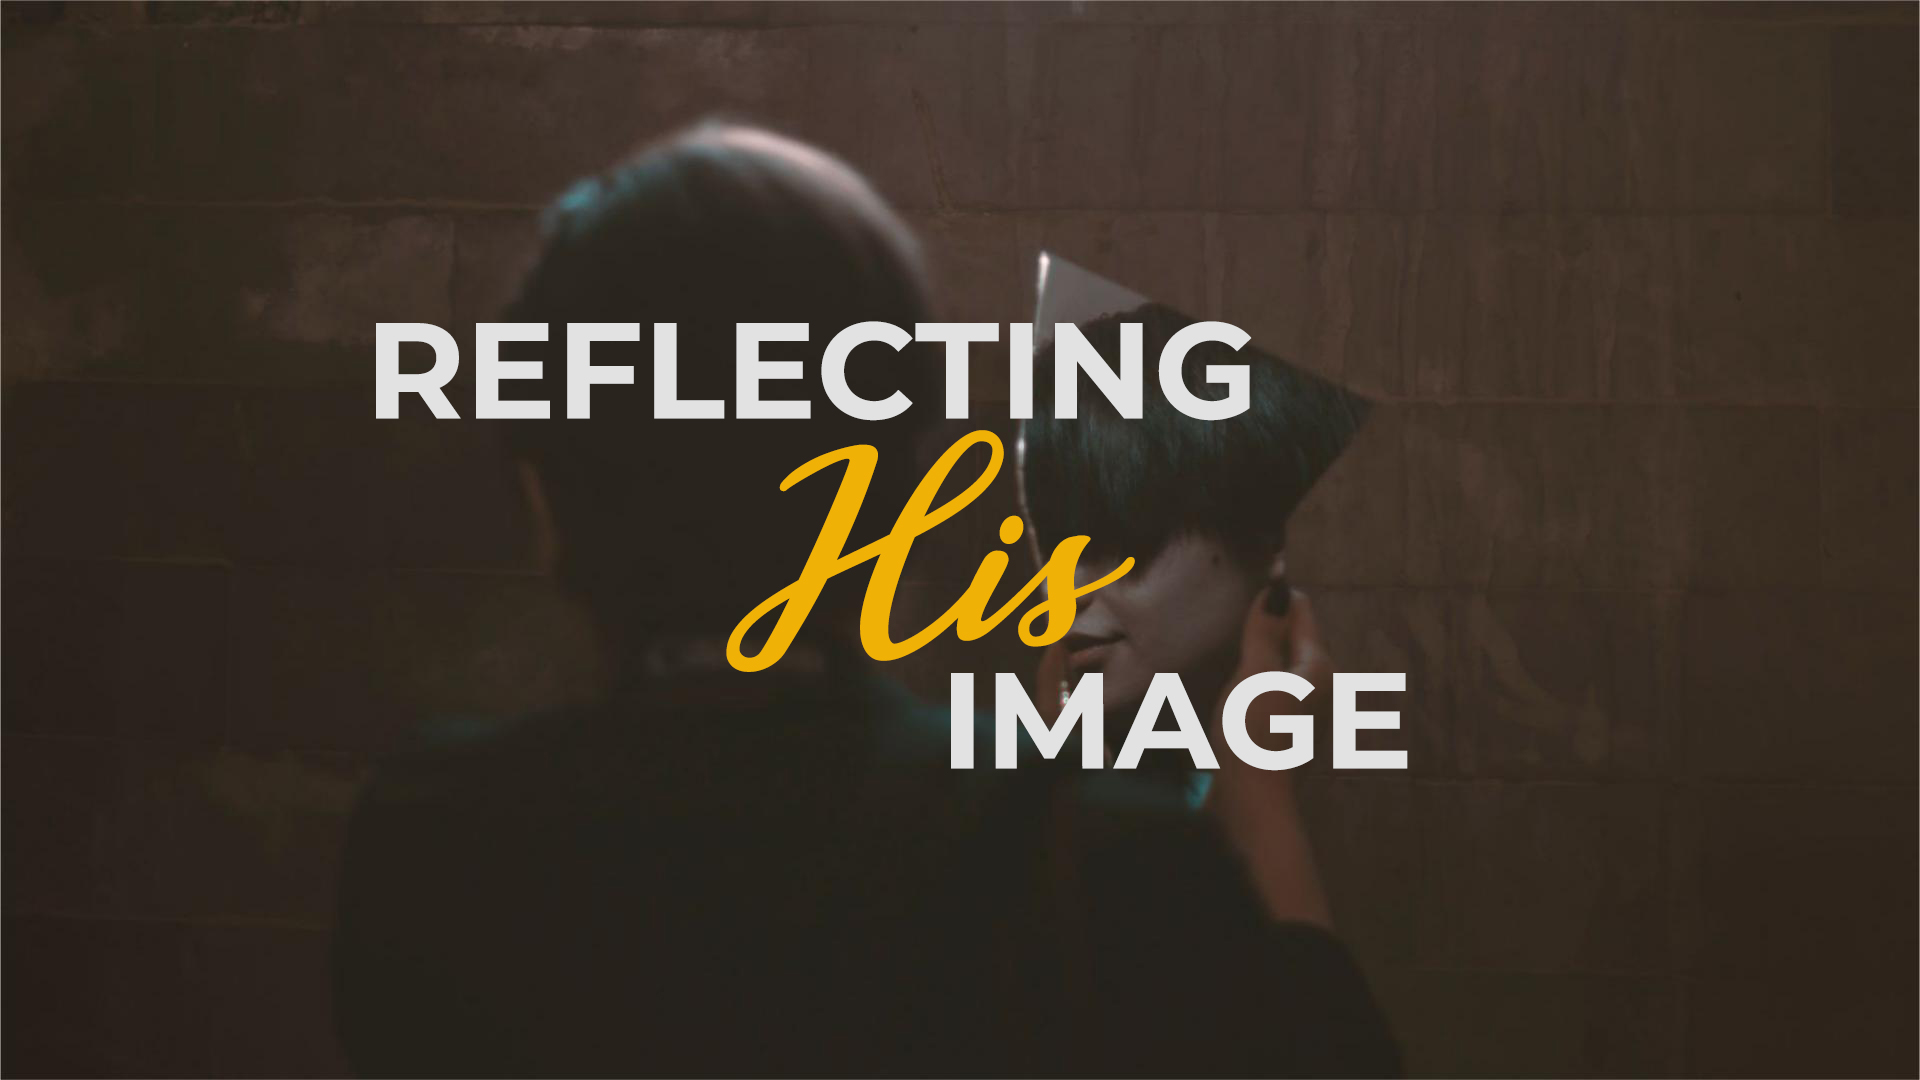 Reflecting His Image